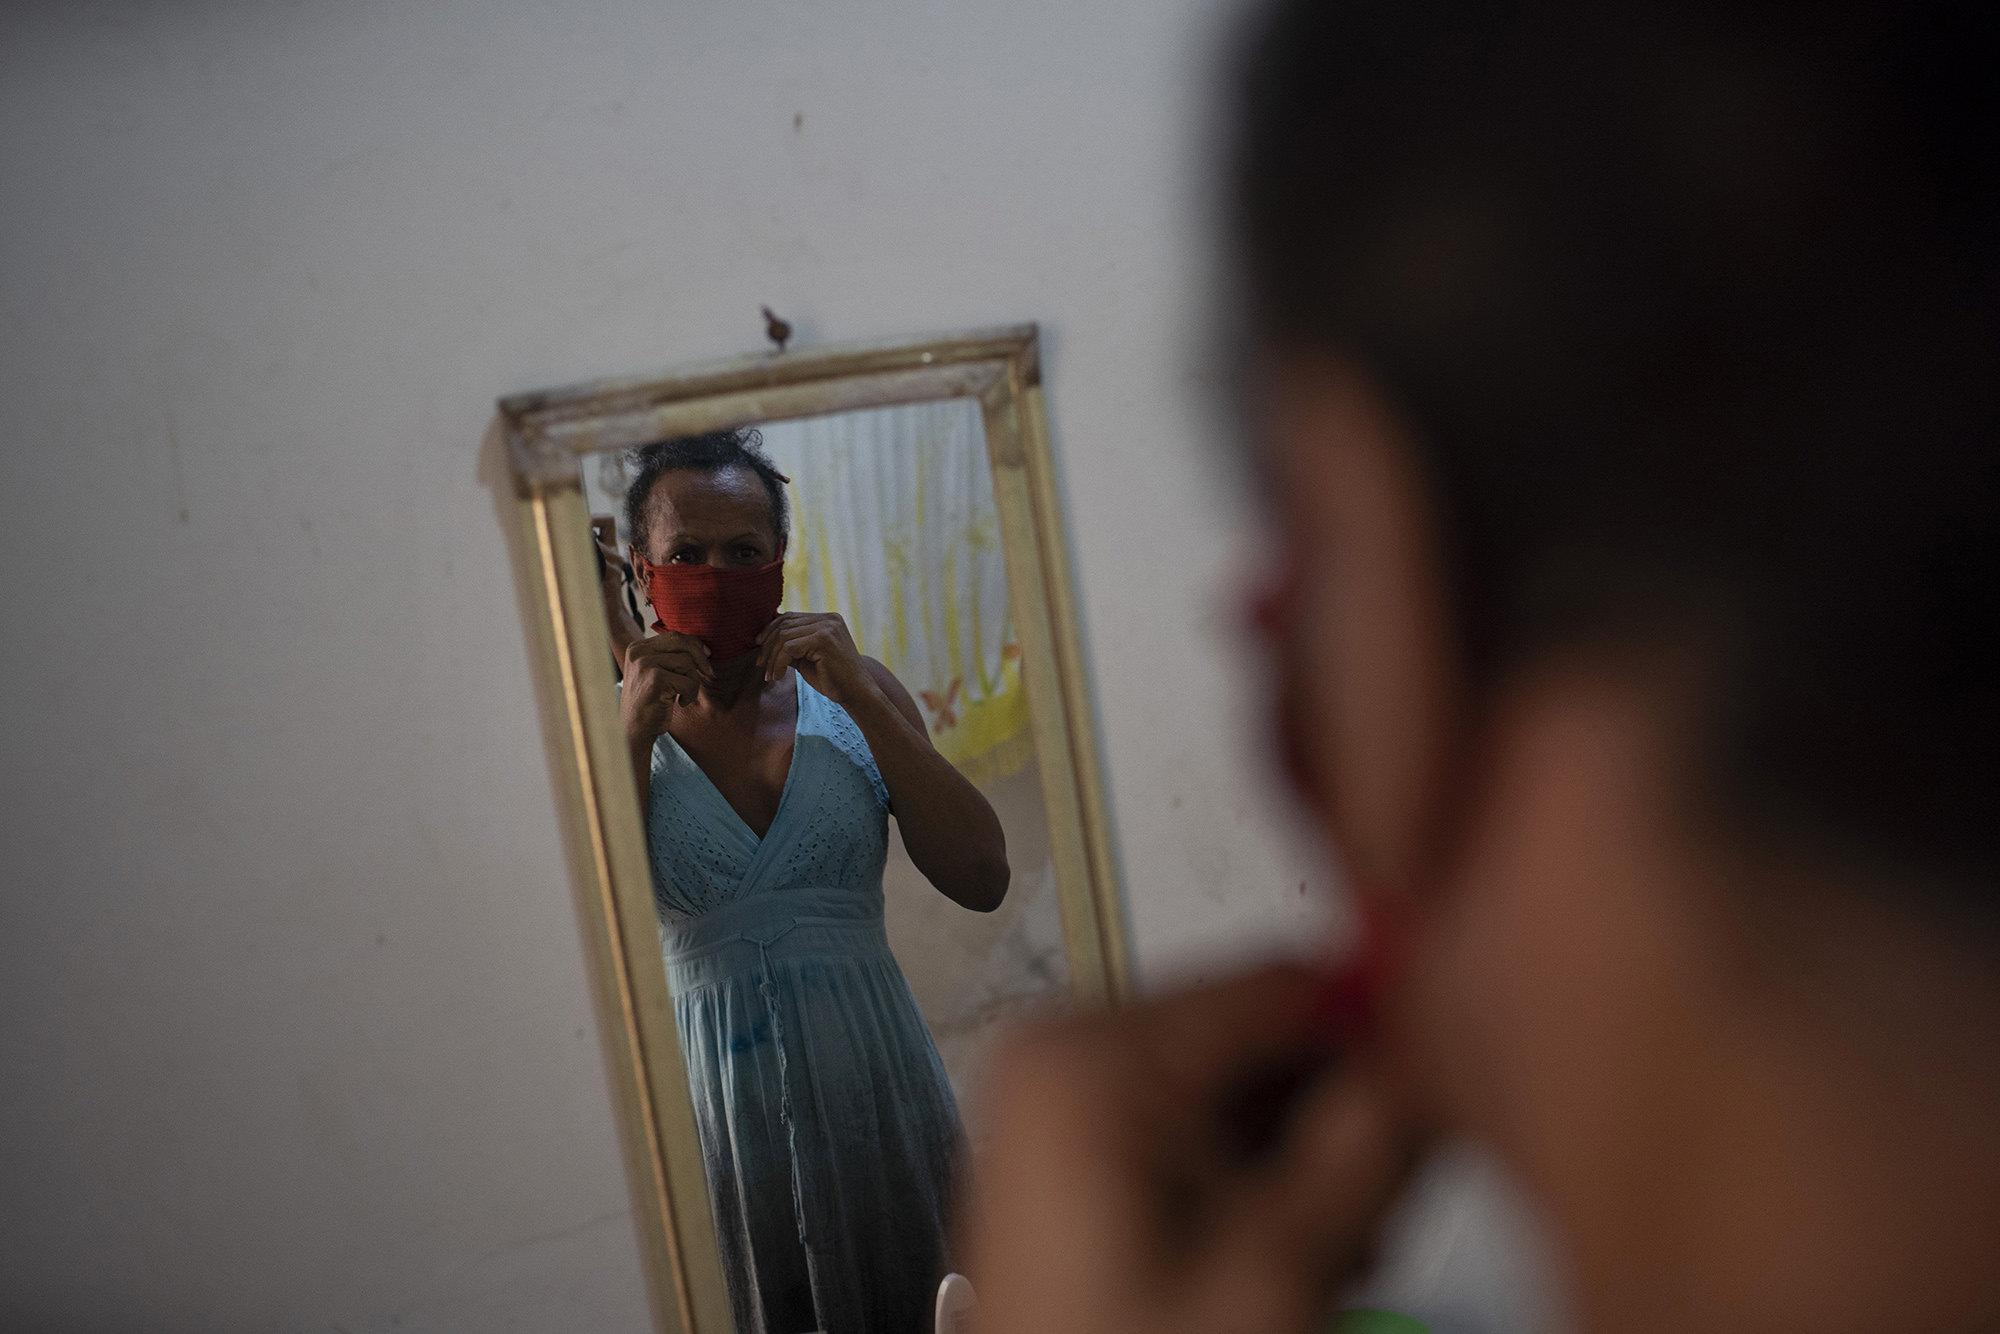 Transgender Claudinha is reflected in a mirror as she puts on a protective face mask inside her room at the squat known as Casa Nem, in Rio de Janeiro, Brazil, Wednesday, July 8, 2020. The six-floor building is home to about 50 LGBTQ people riding out the new coronavirus pandemic behind closed doors.